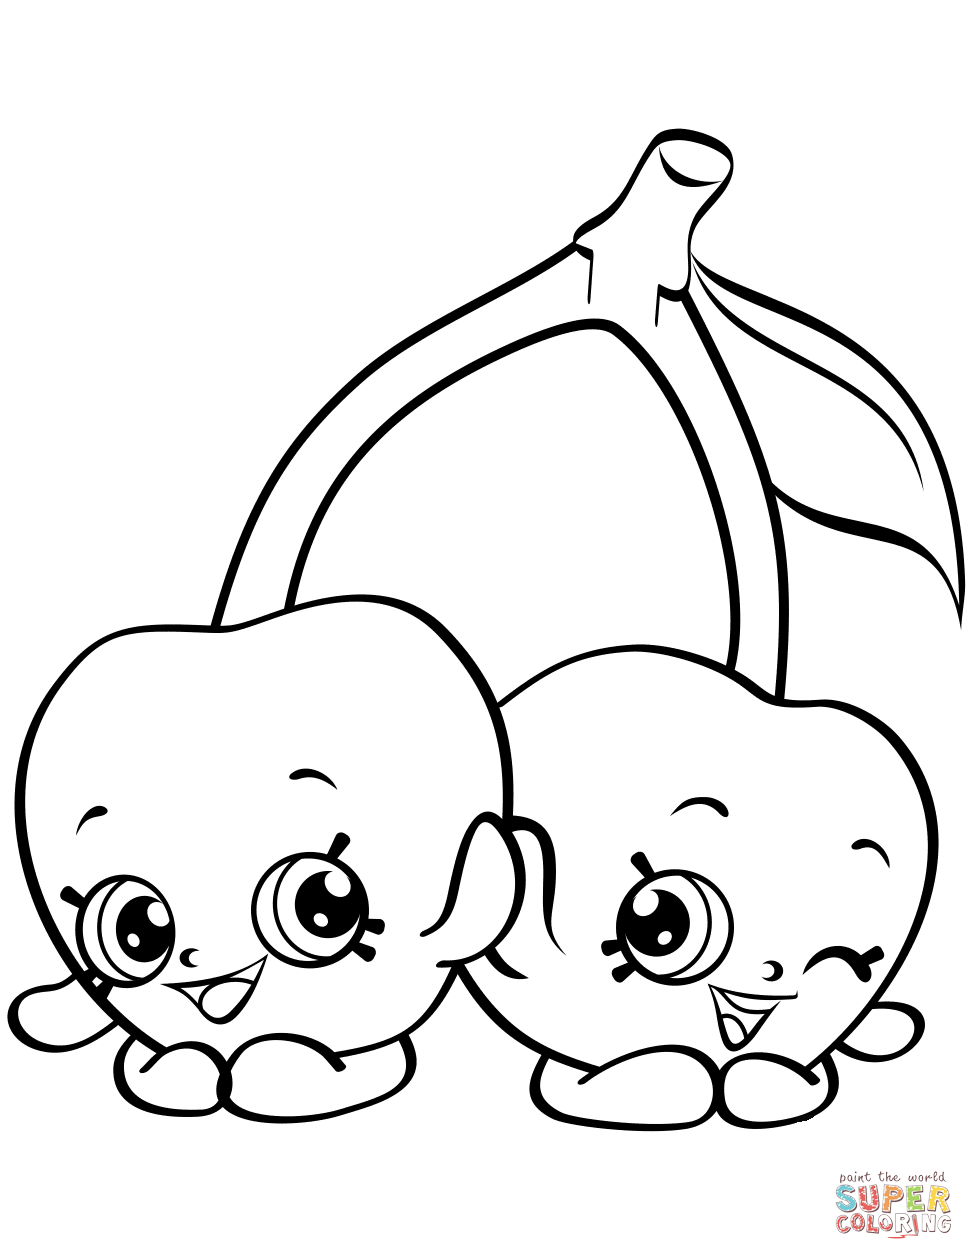 Shocking image intended for shopkin coloring pages printable